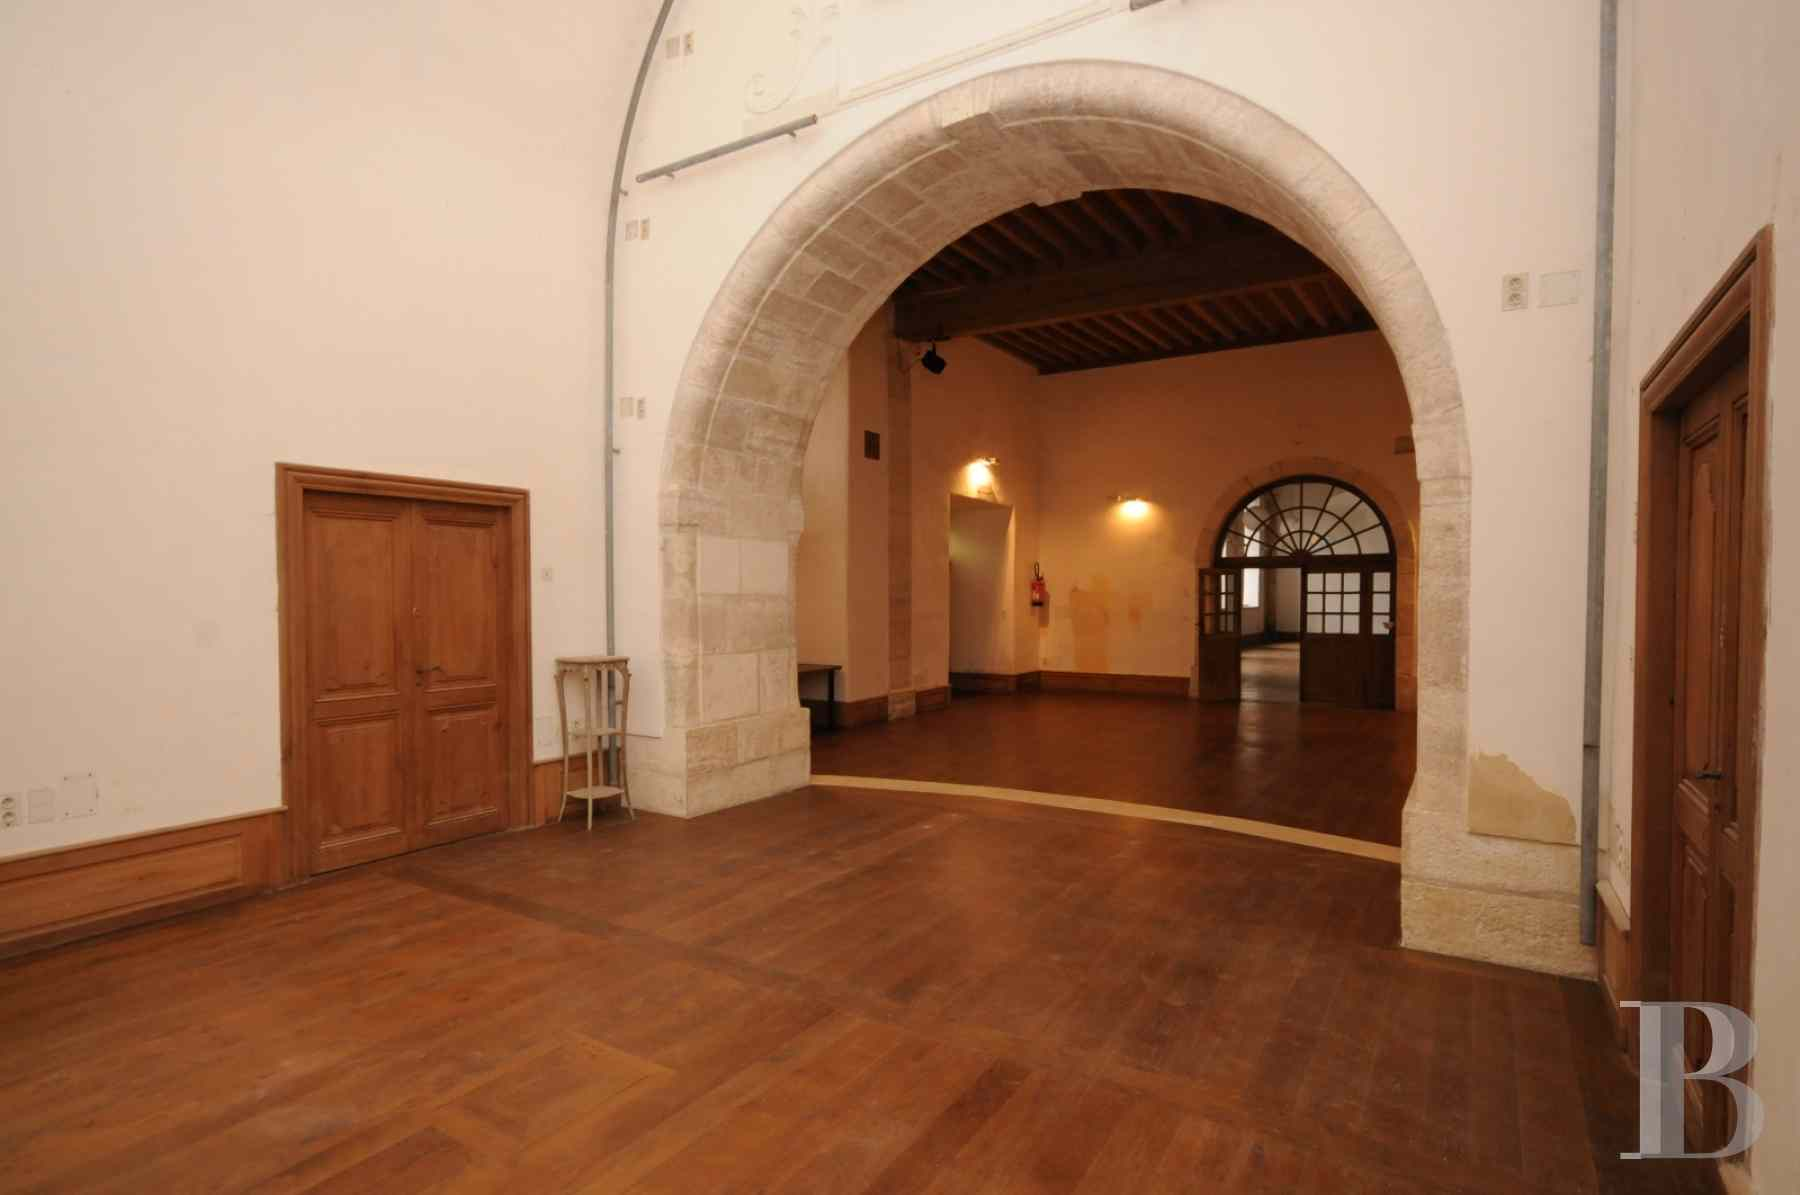 property for sale France midi pyrenees residences historic - 15 zoom